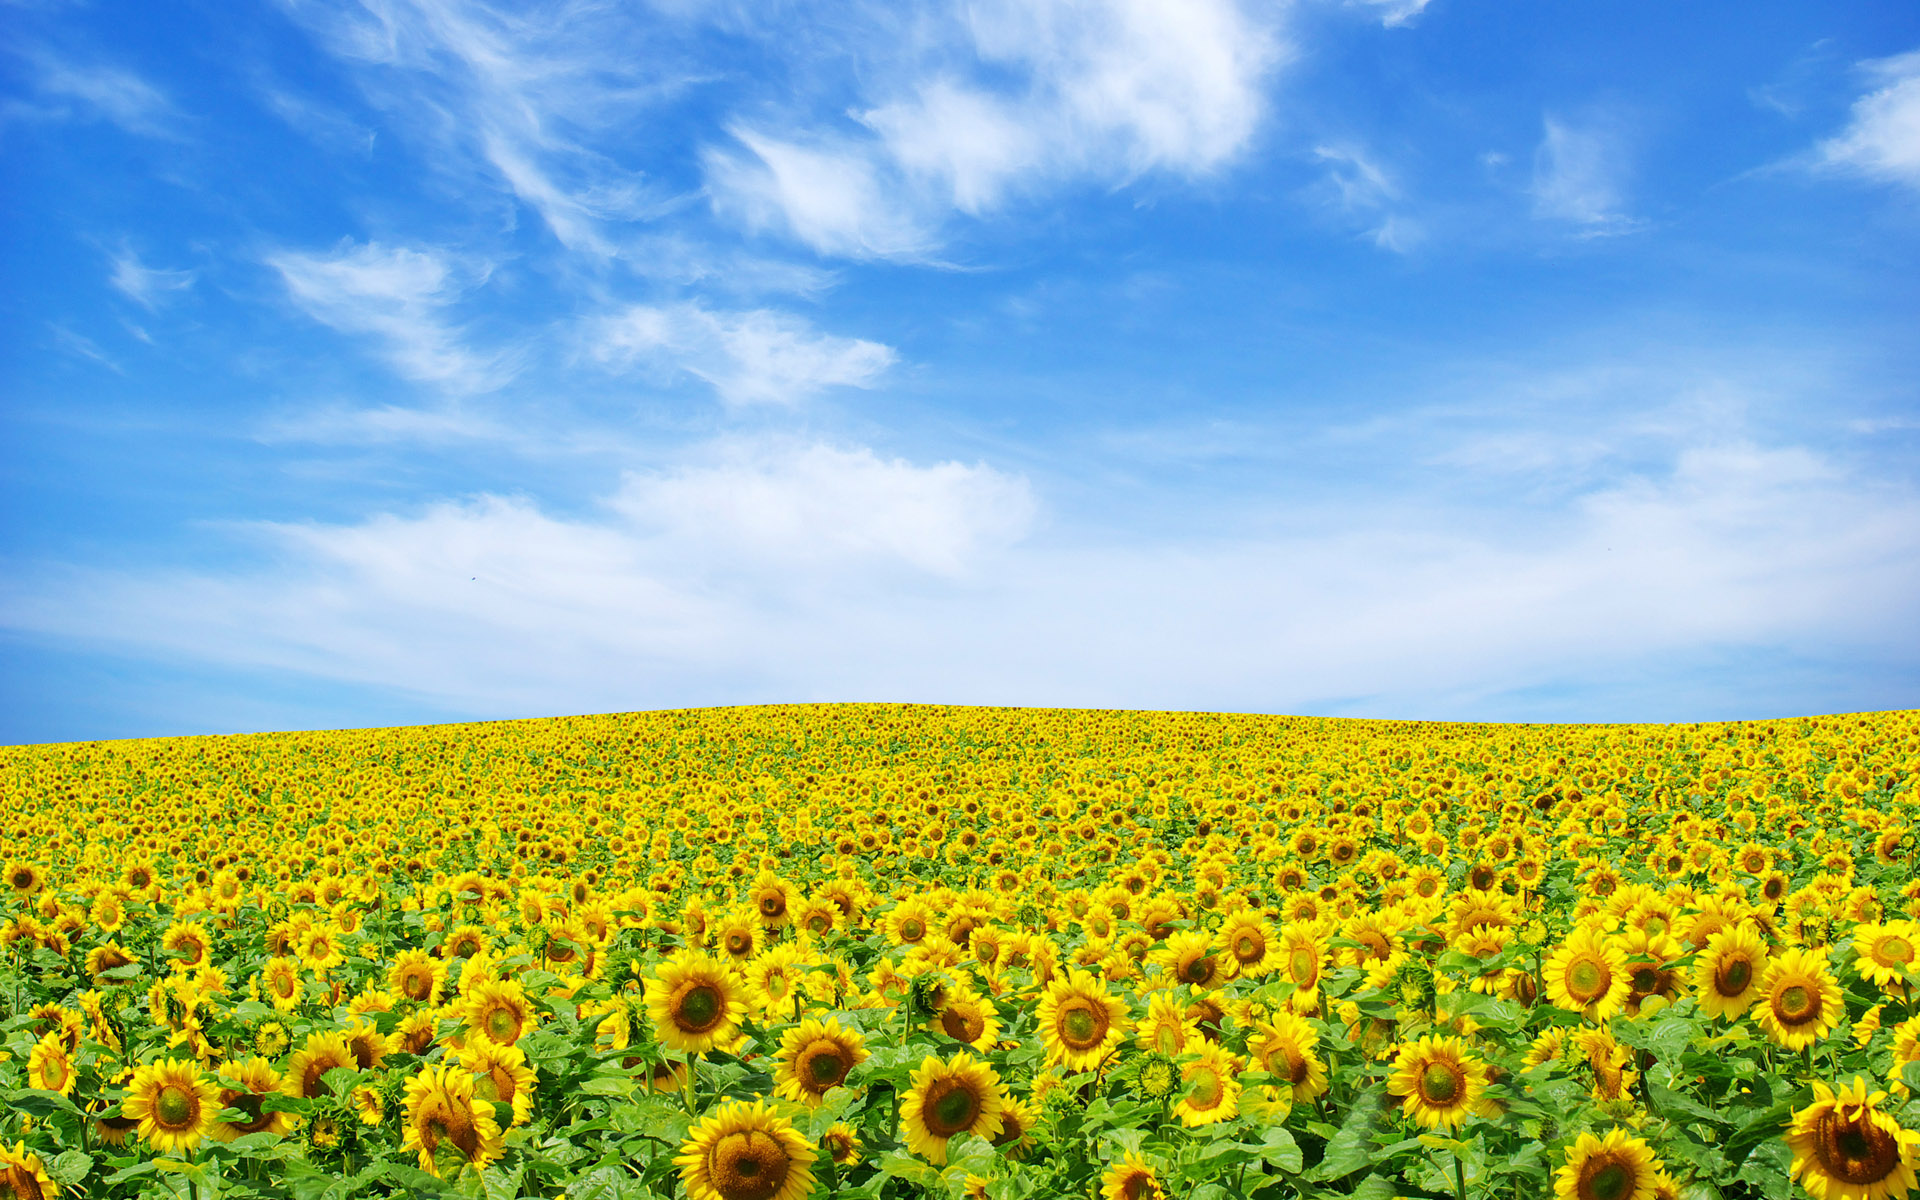 Sunflower Landscape Wallpapers HD Wallpapers 1920x1200